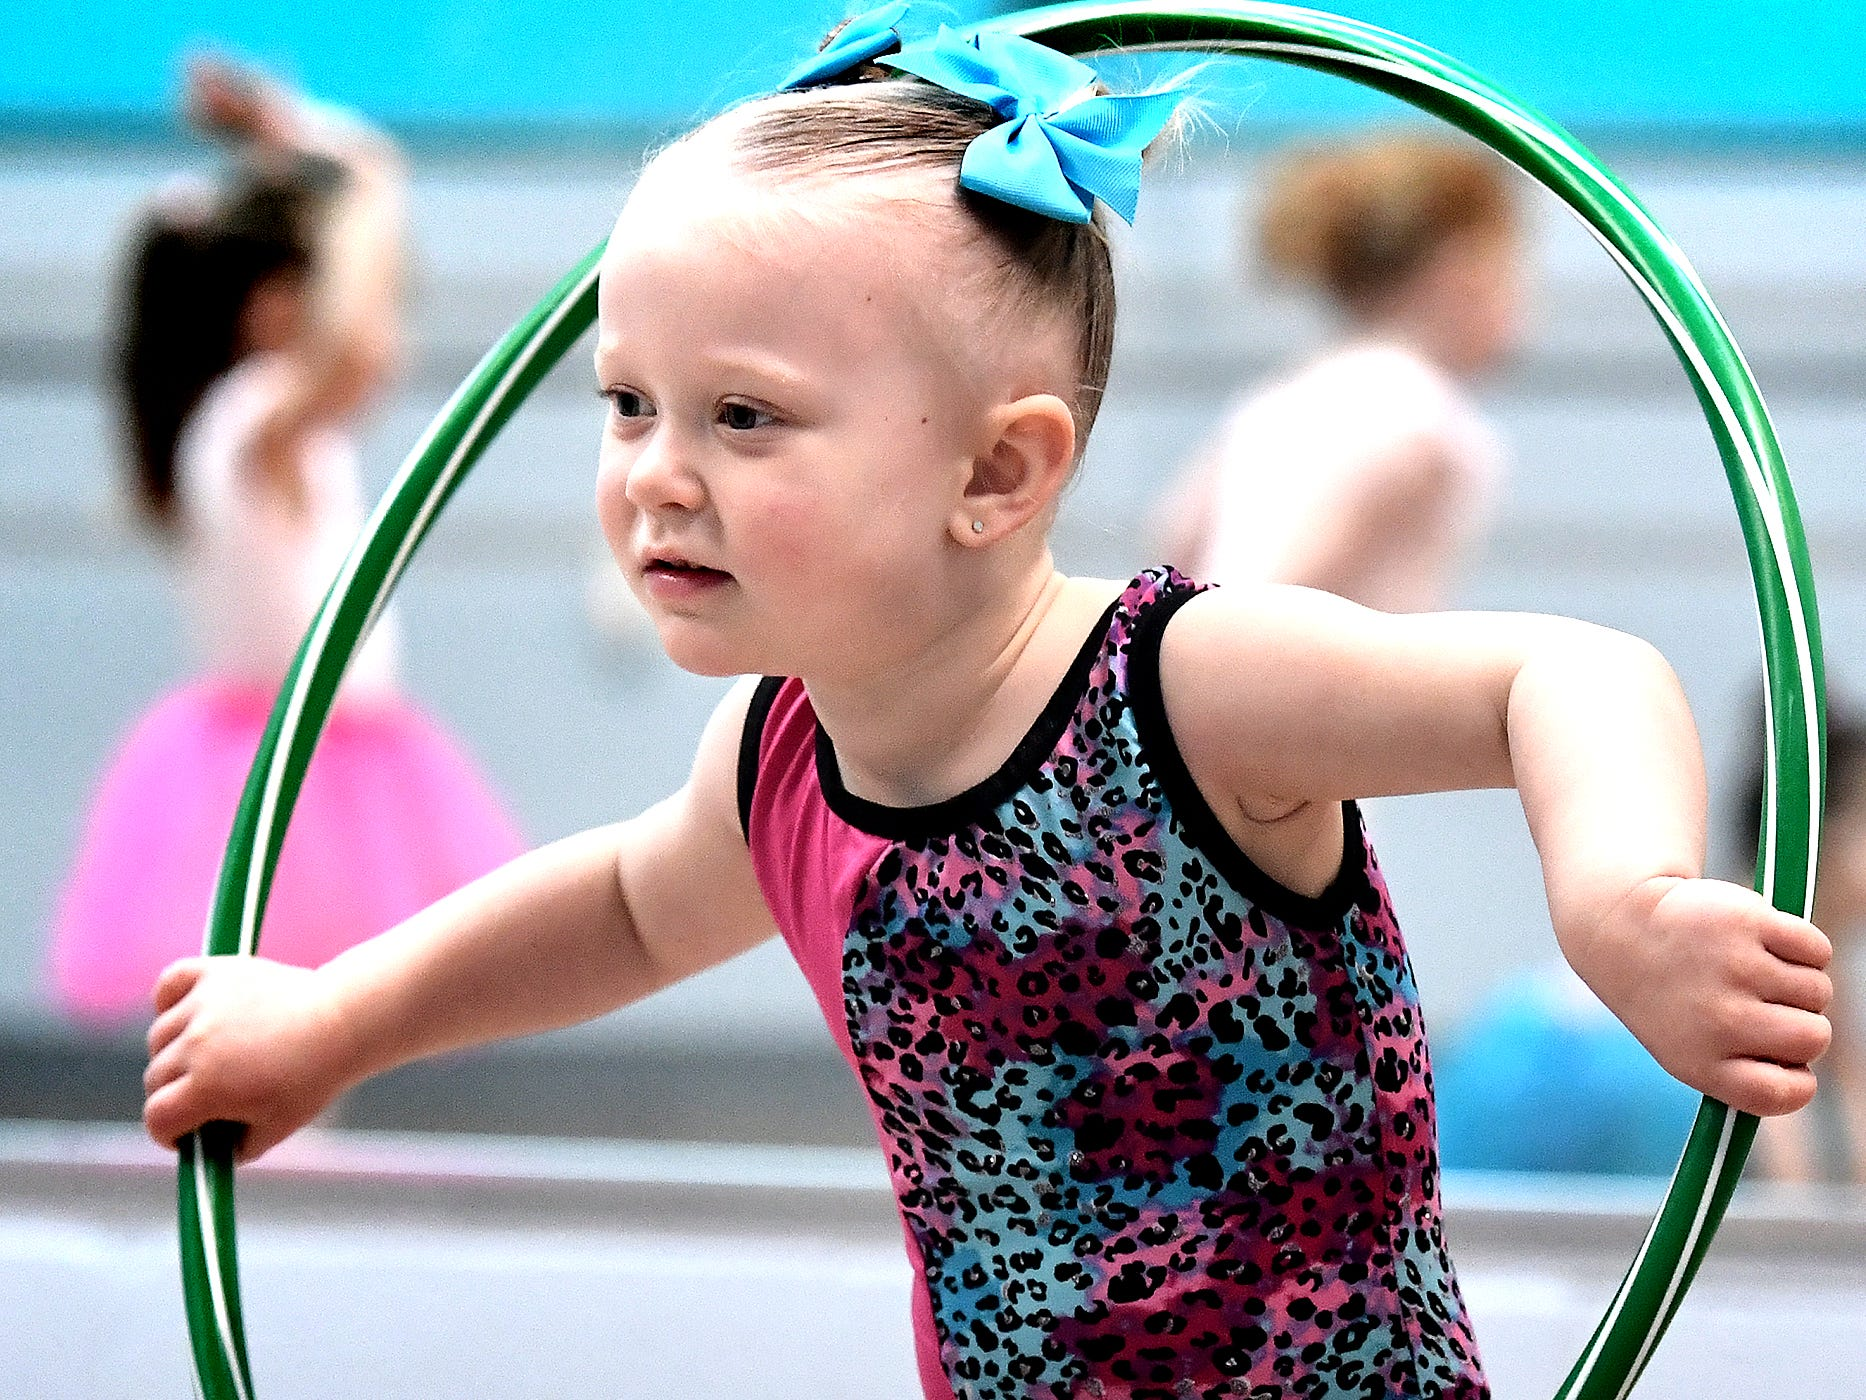 Alaina Byrne, 2, of West York, dances with a hula hoop during the Twinkle Babies class at Greater York Dance Thursday, April 4, 2019. The four-week program, for children aged 2 to 4, is part of the Twinkle Star Dance Program for early childhood dancers. Bill Kalina photo